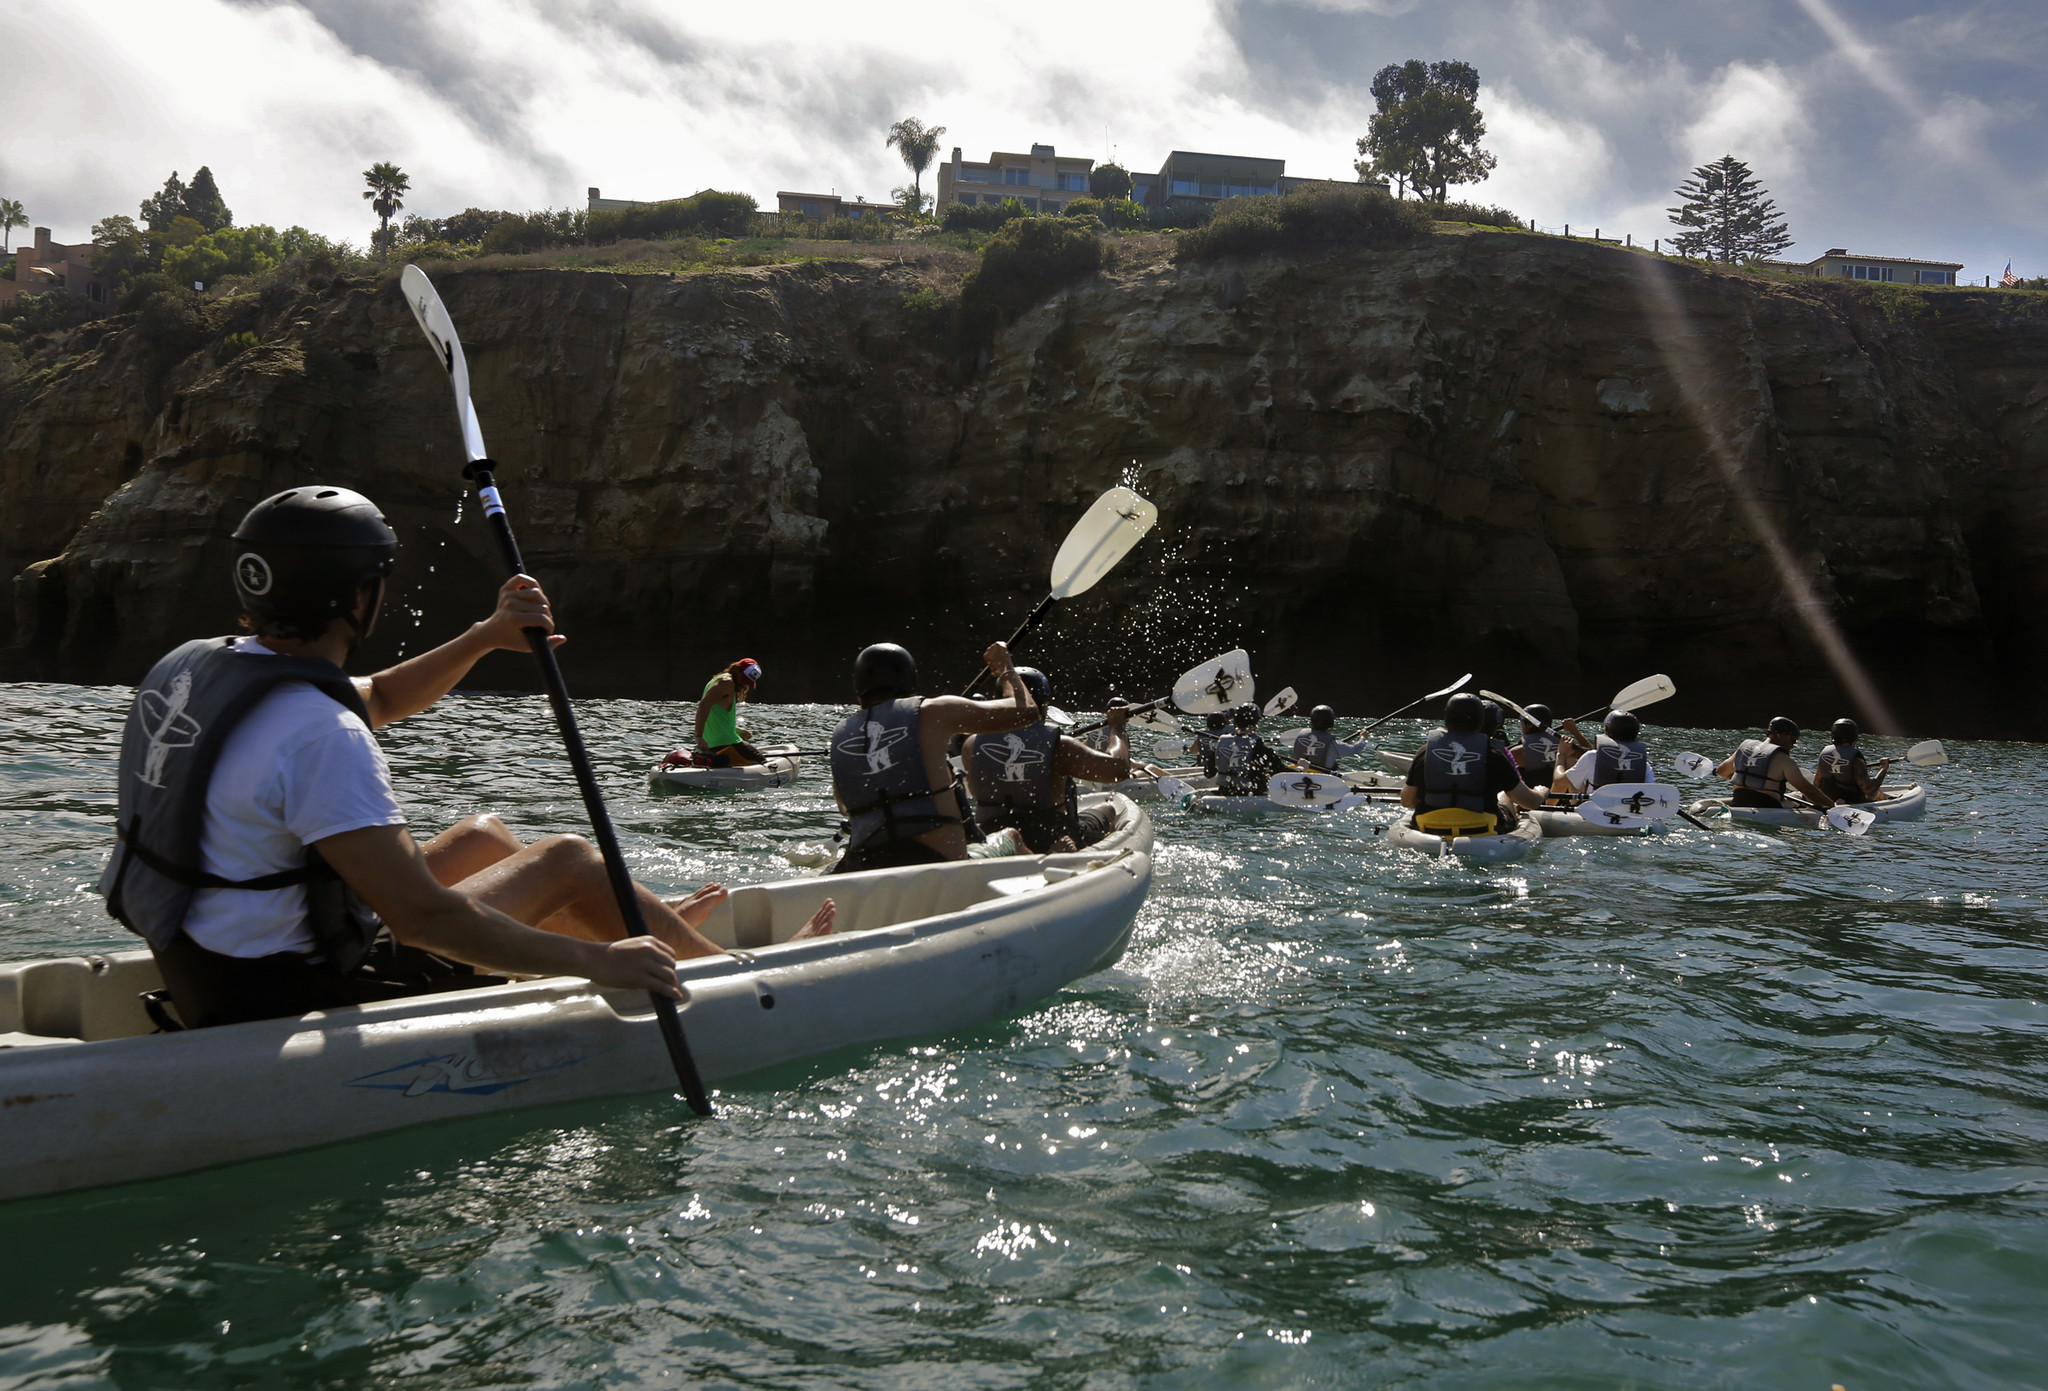 Want to hang with La Jolla's rock stars? Kayak to them.